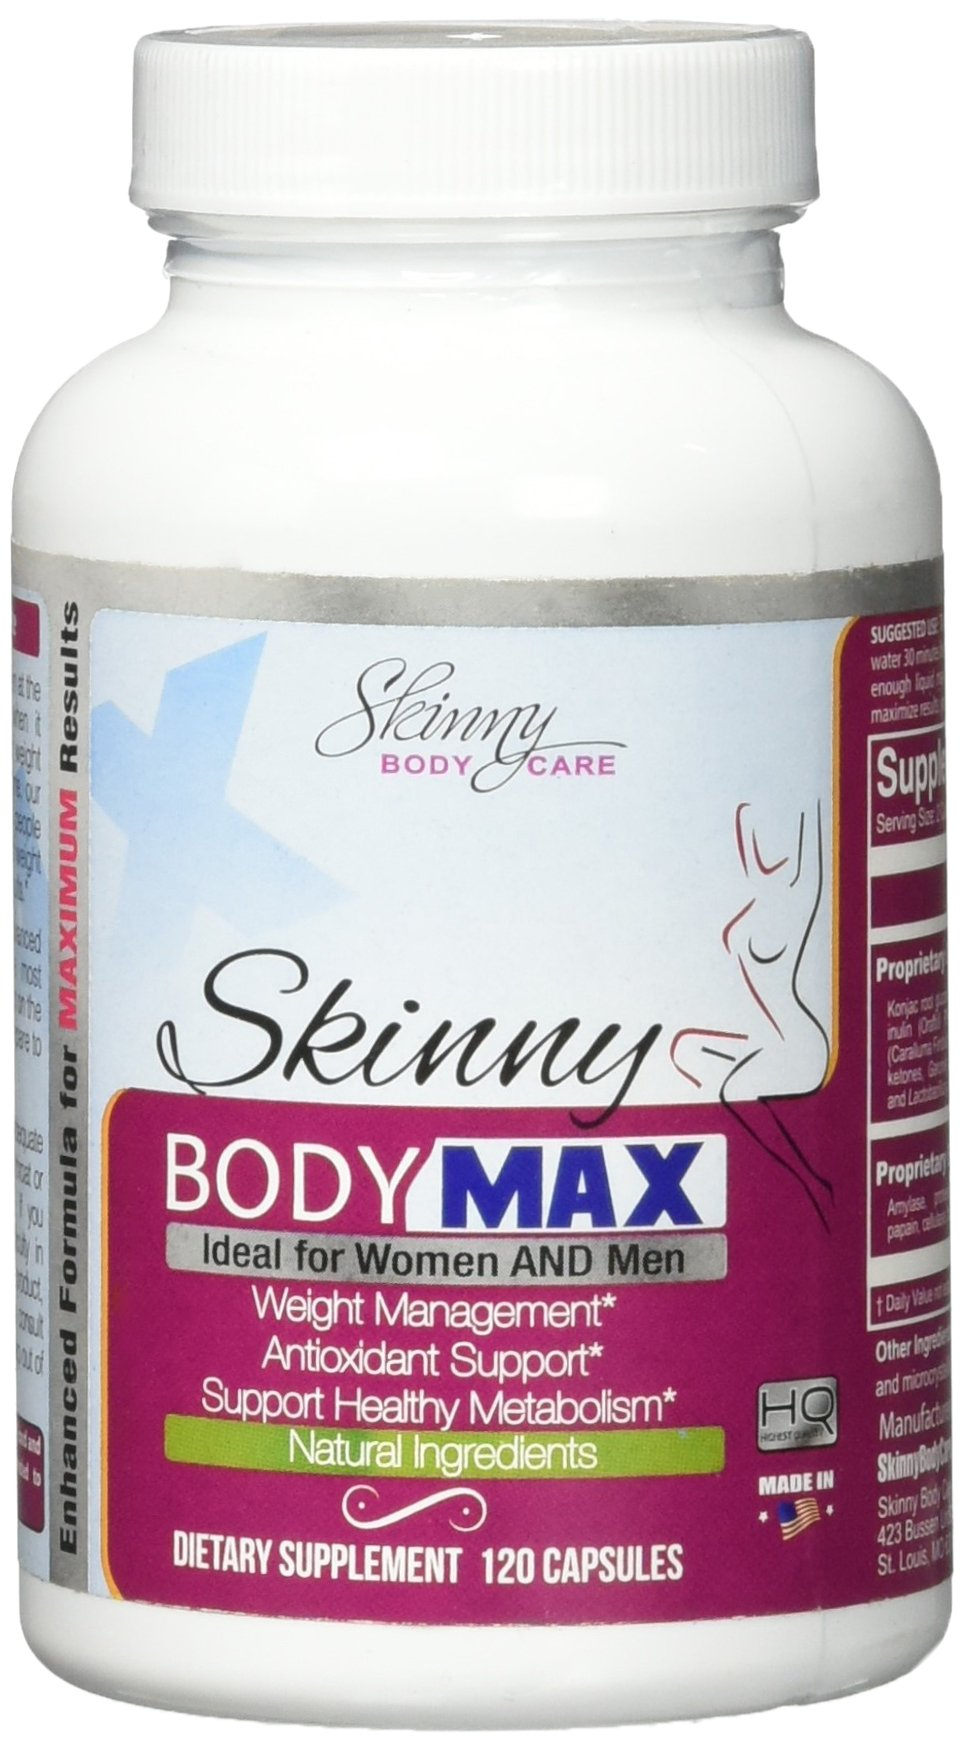 Skinny Body Max - All Natural Appetite Suppressant and Weight loss Supplement - 120 Capsules by Skinny Body Max